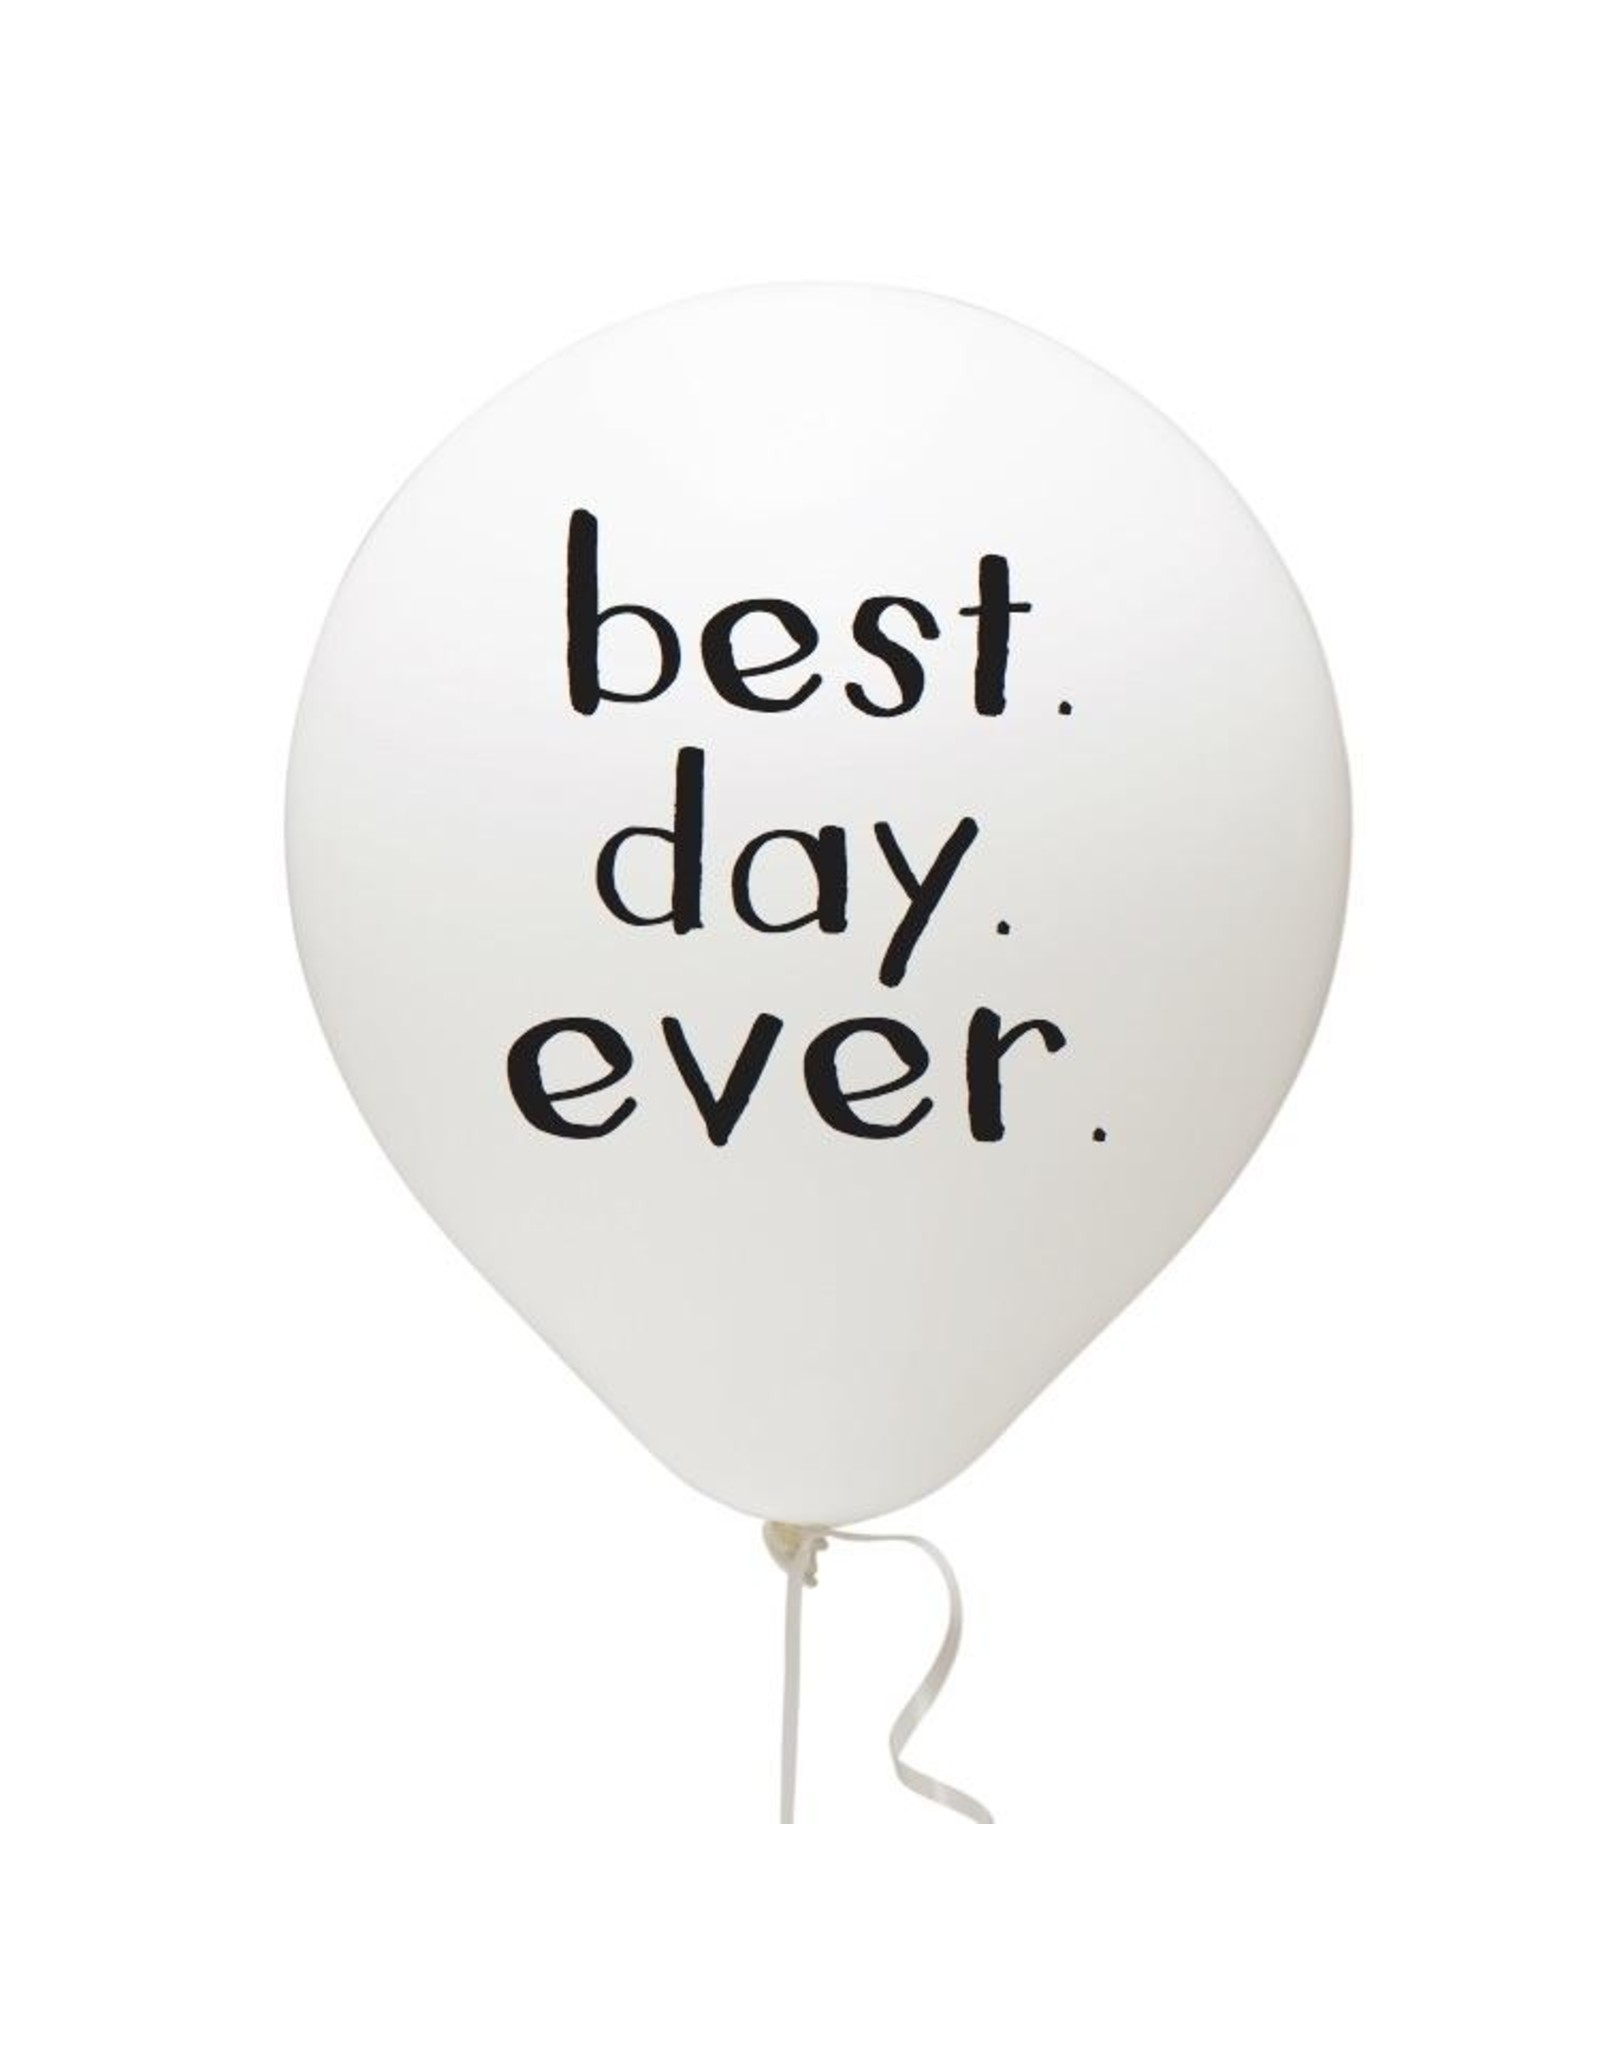 Balloons (3 Pack) - Best Day Ever